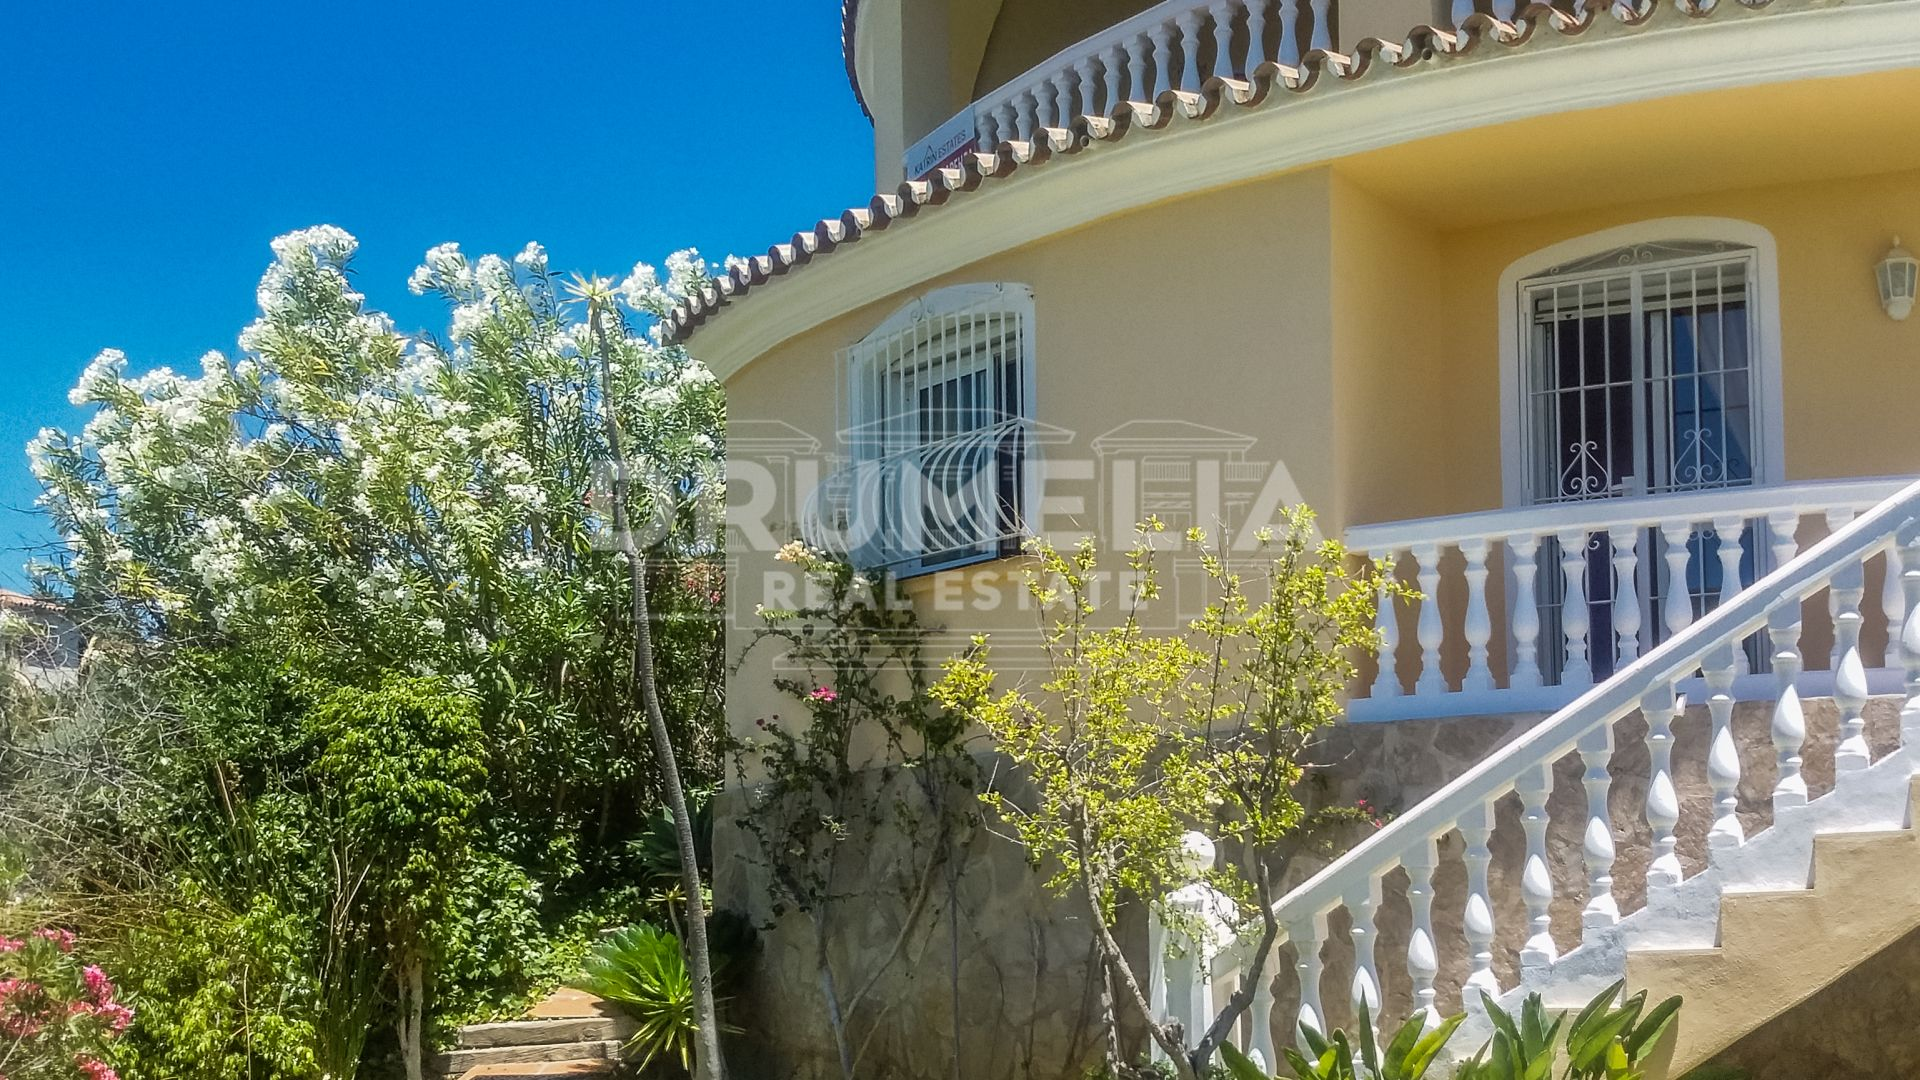 Marbella East, Fabulous Villa in El Rosario, Marbella East (Marbella) For sale / rent